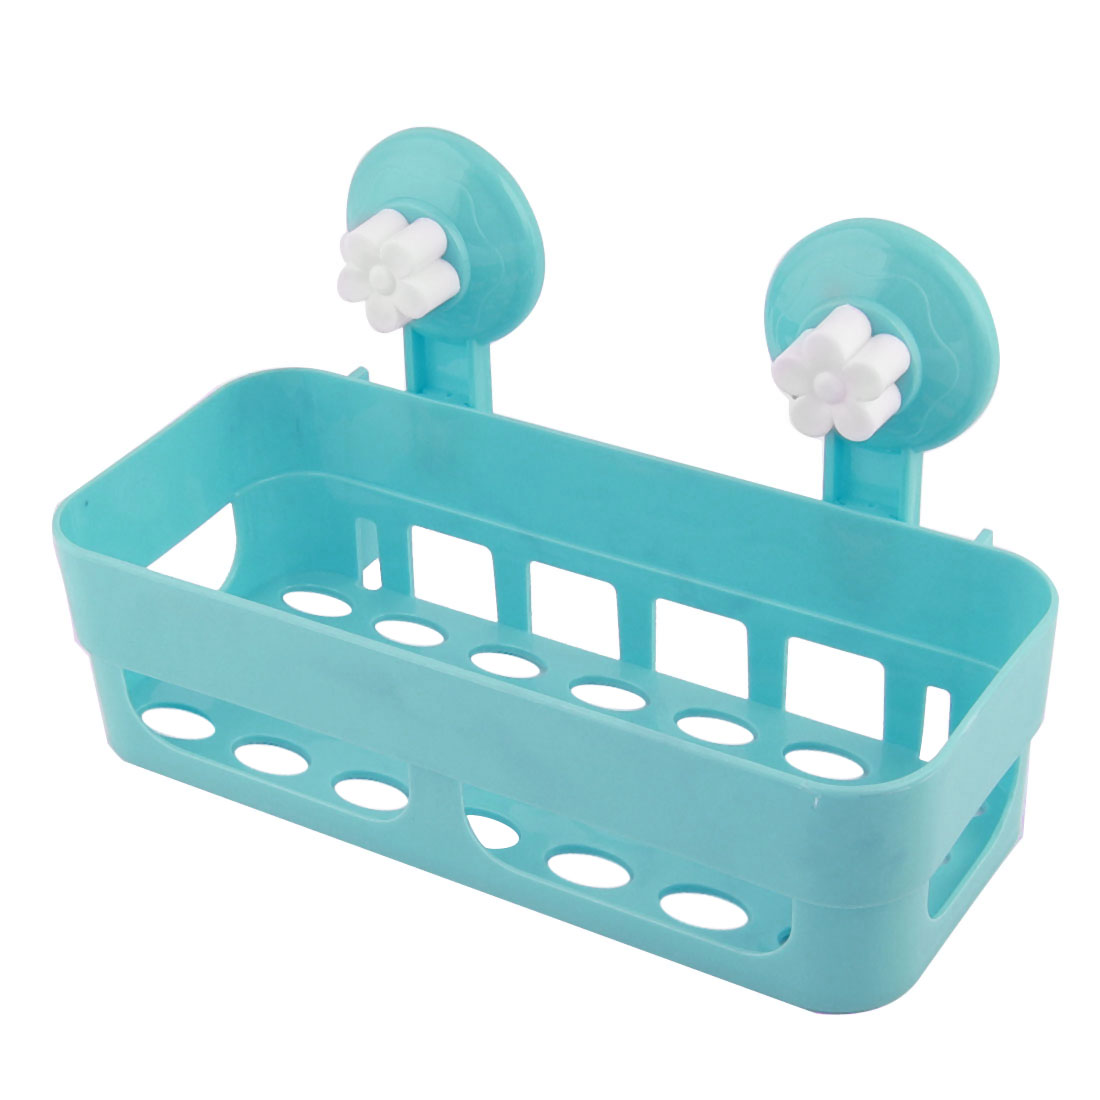 Bathroom Kitchen Rectangle Plastic Commodity Organize Suction Cup Shelf Holder Blue